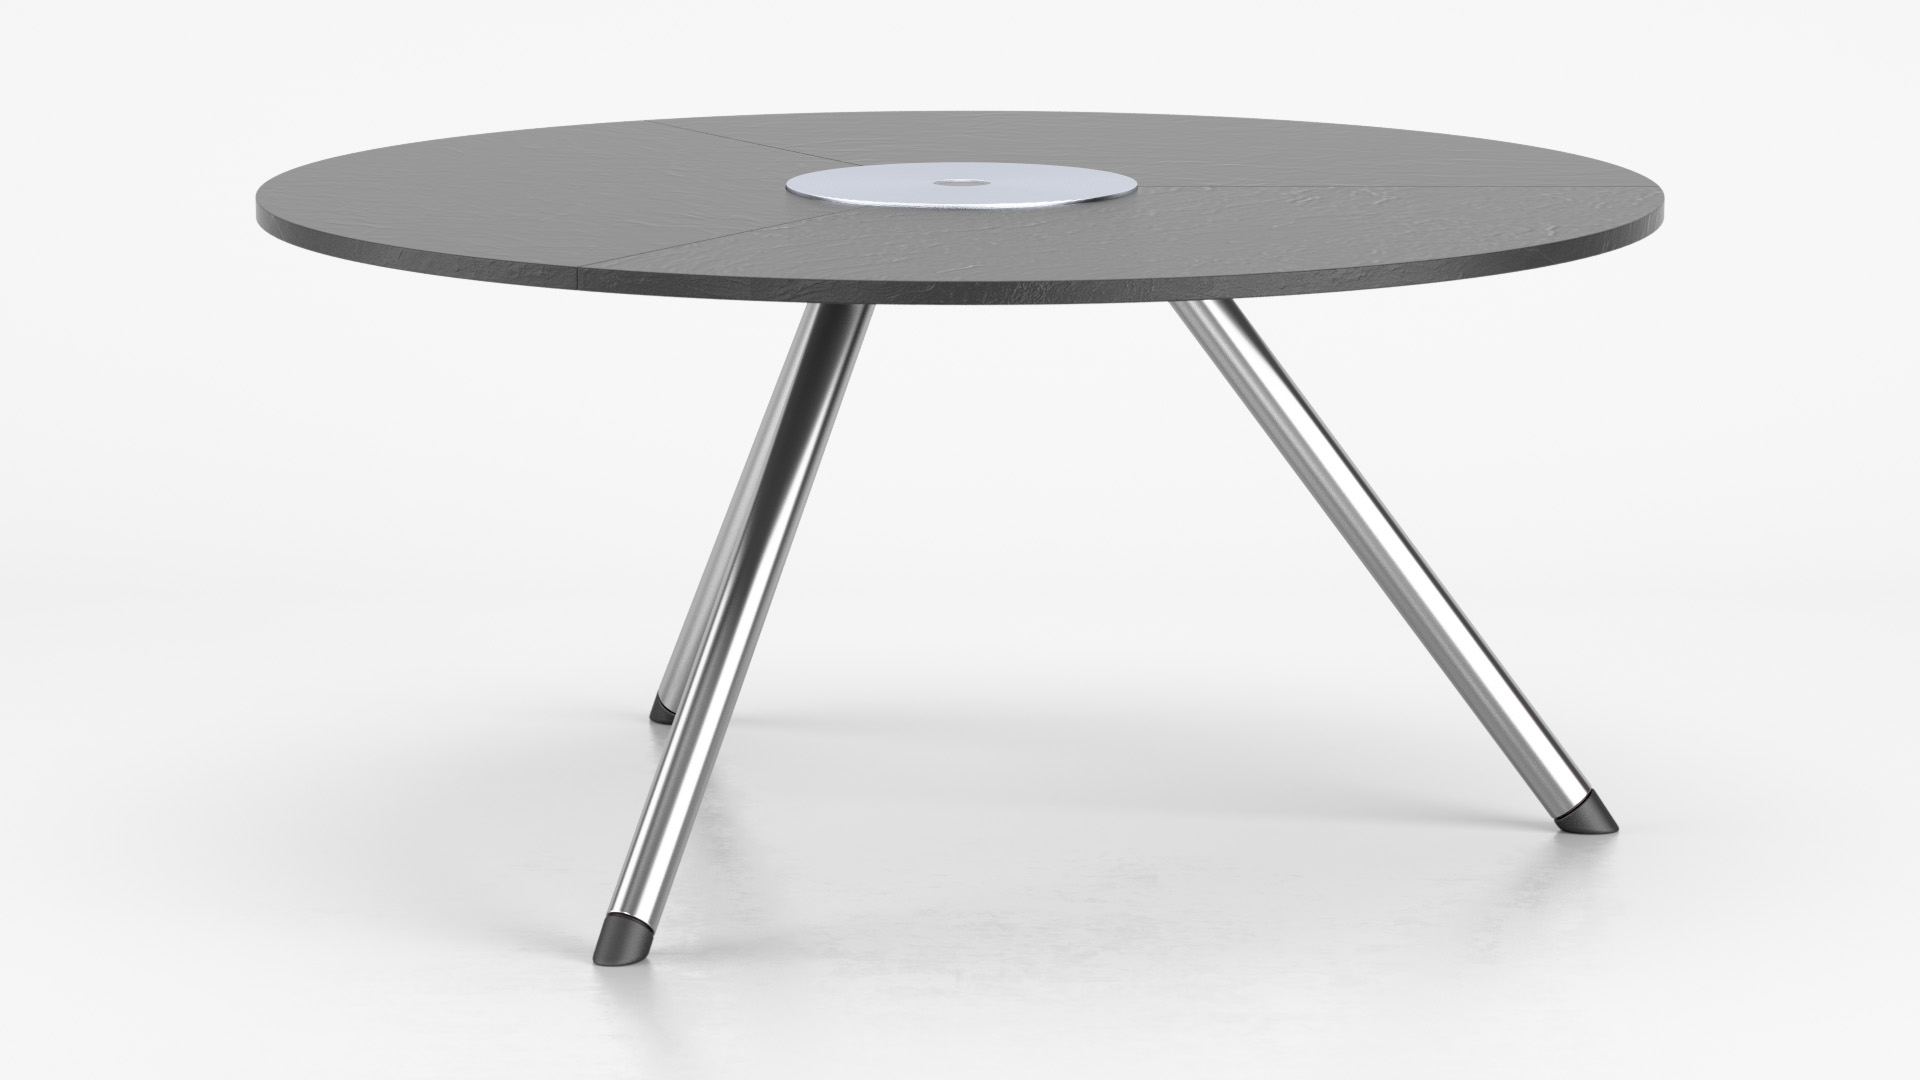 Zenith_Table_WhiteSet_01_0002